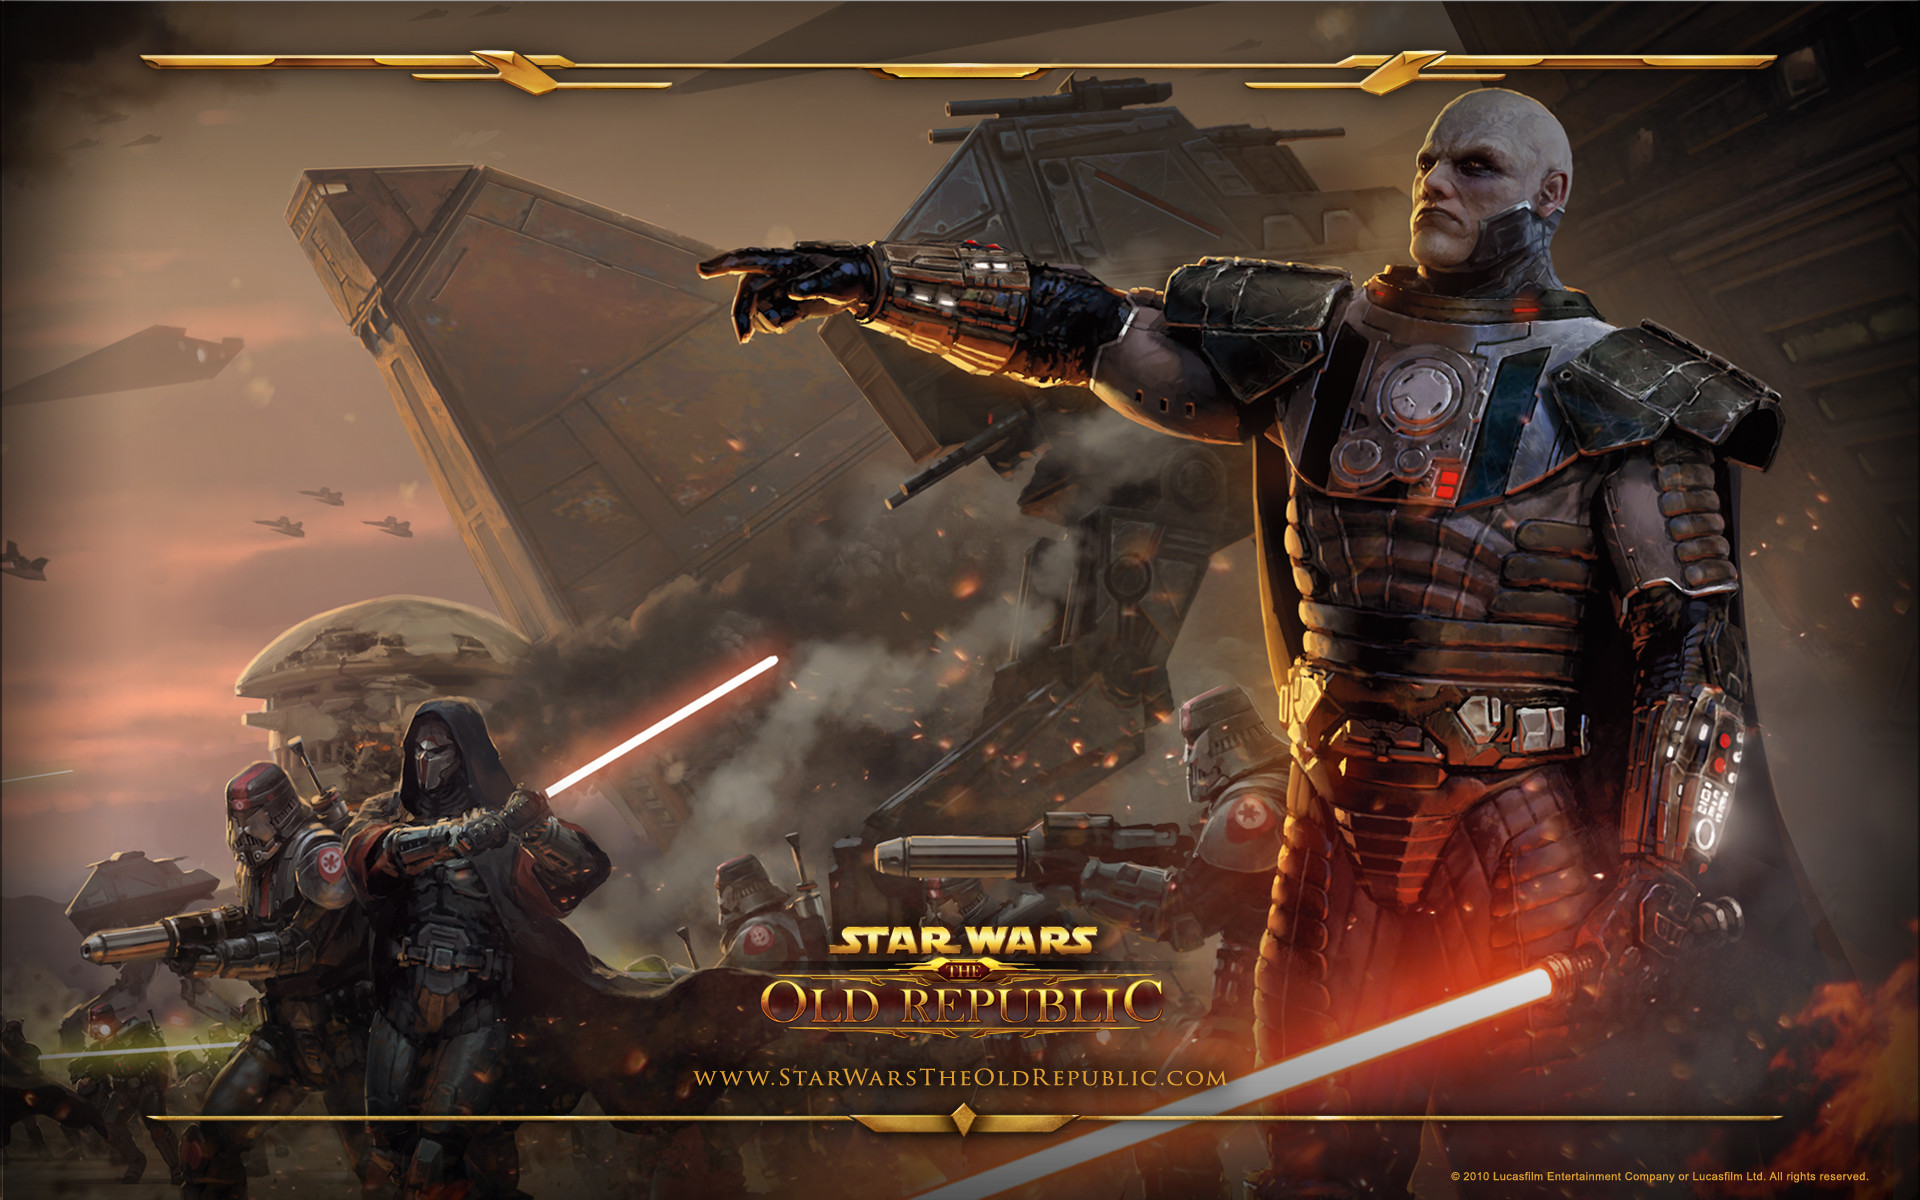 1920x1200 Star Wars: The Old Republic Wallpaper Sith Armt